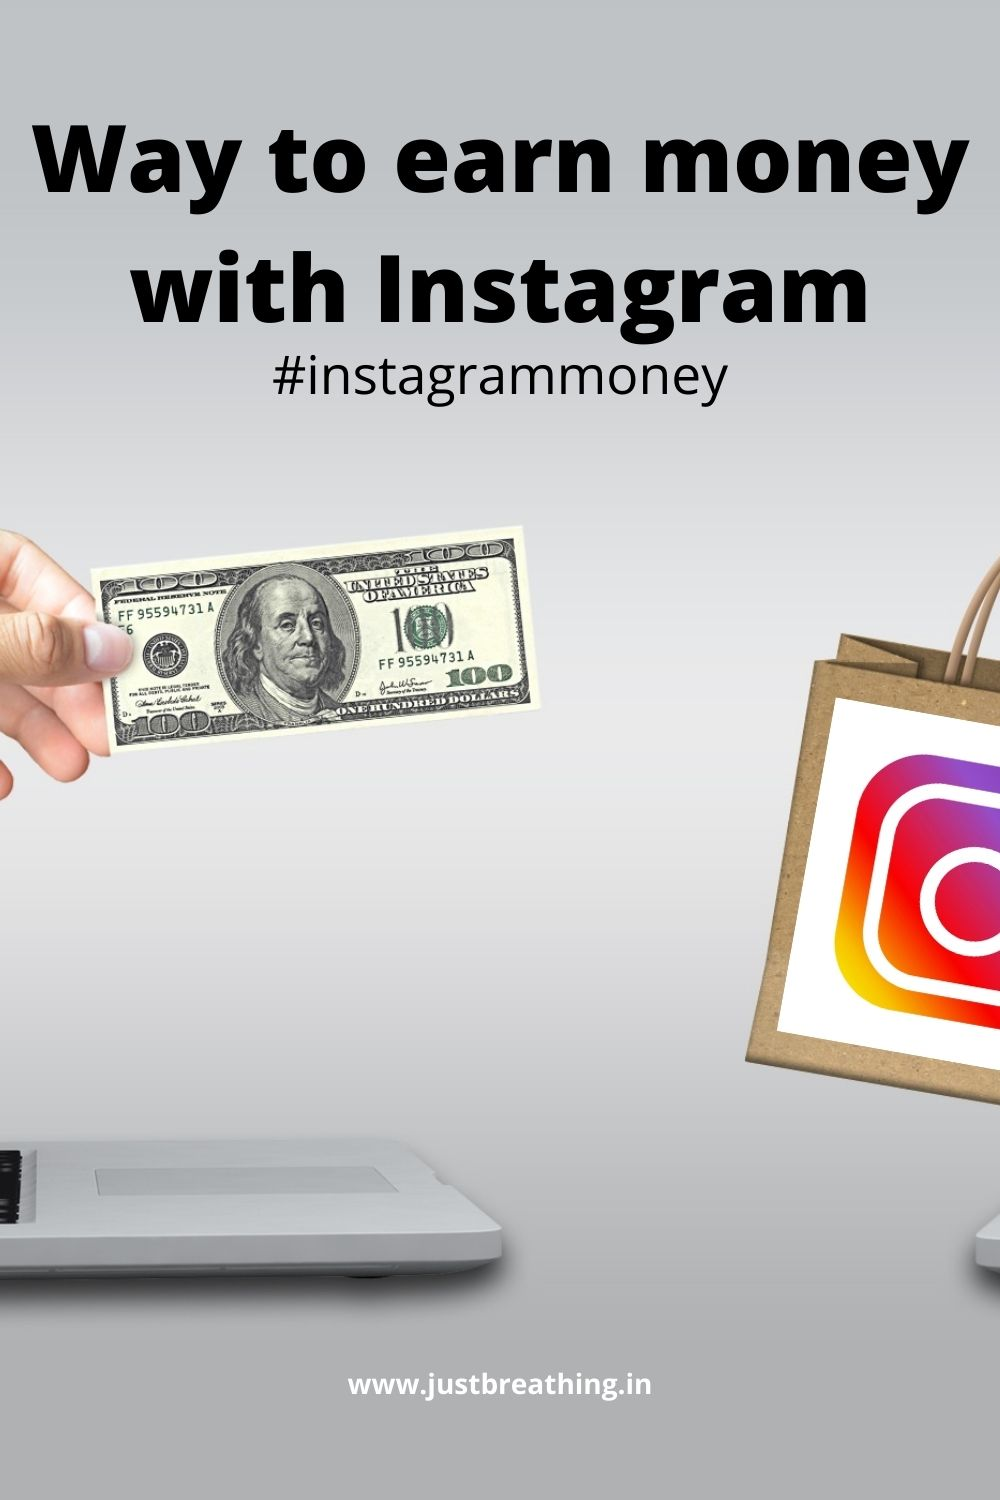 Ideas to make money with Instagram #instagrammoney Way to earn money with Instagram